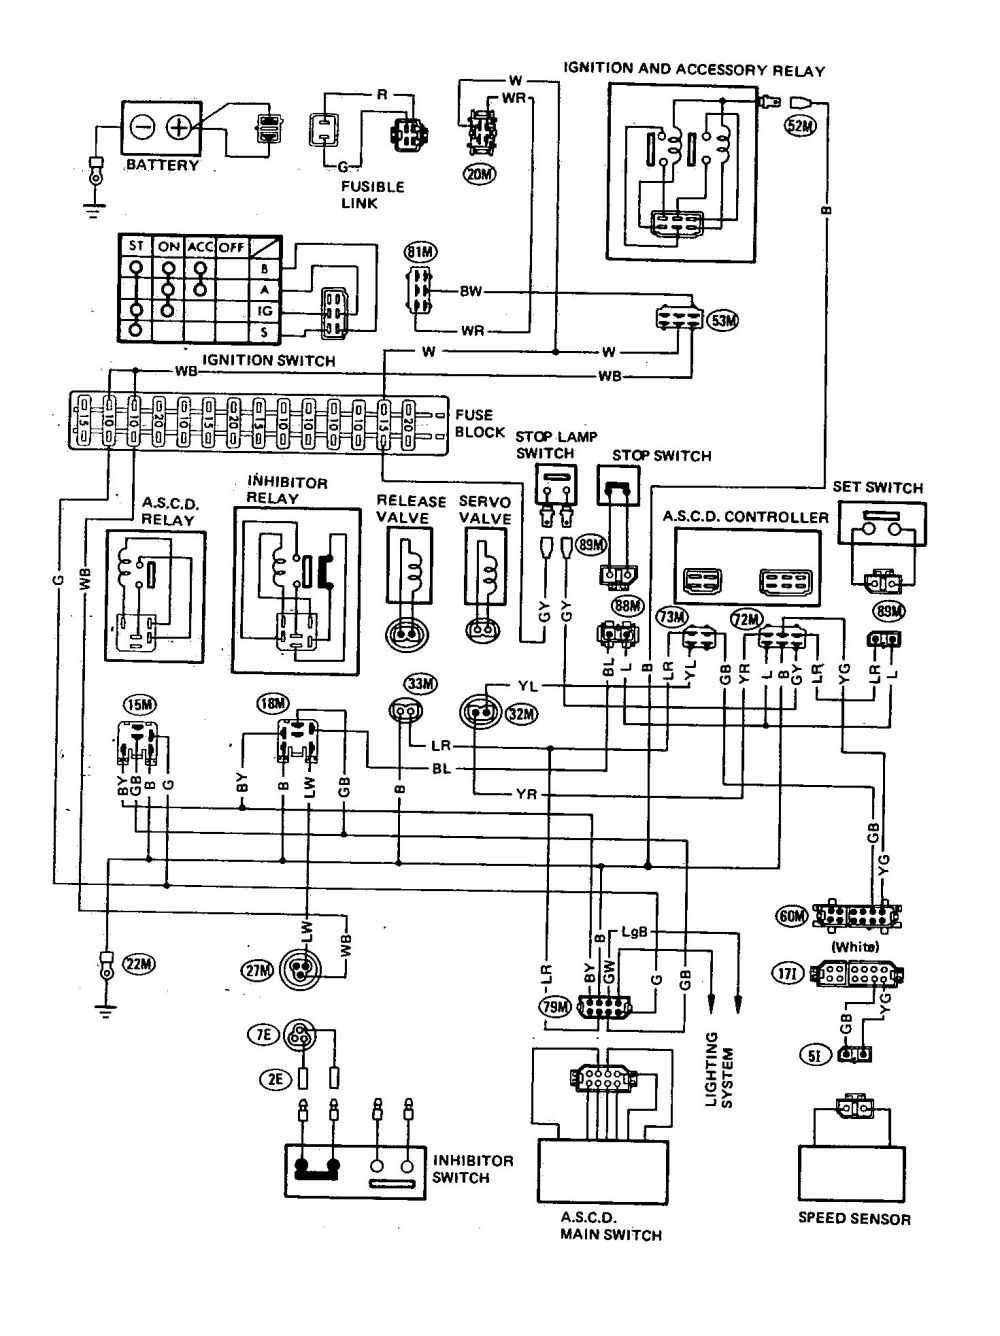 medium resolution of datsun 200sx 1980 wire diagram automatic speed control device